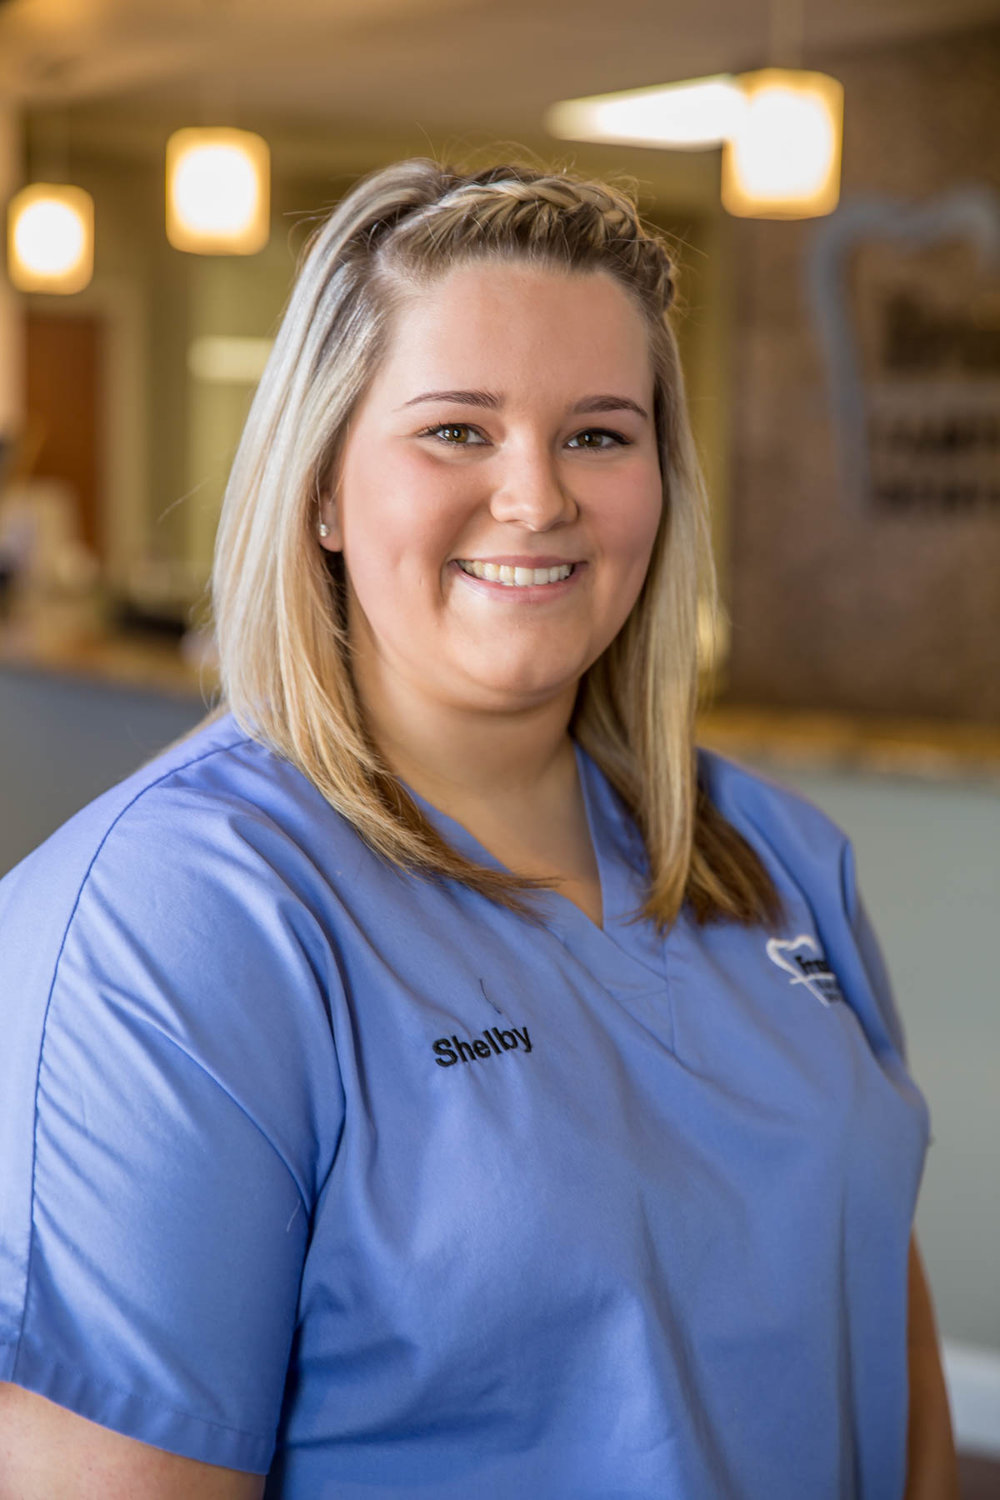 Meet Shelby at Frazee Family Dentistry.